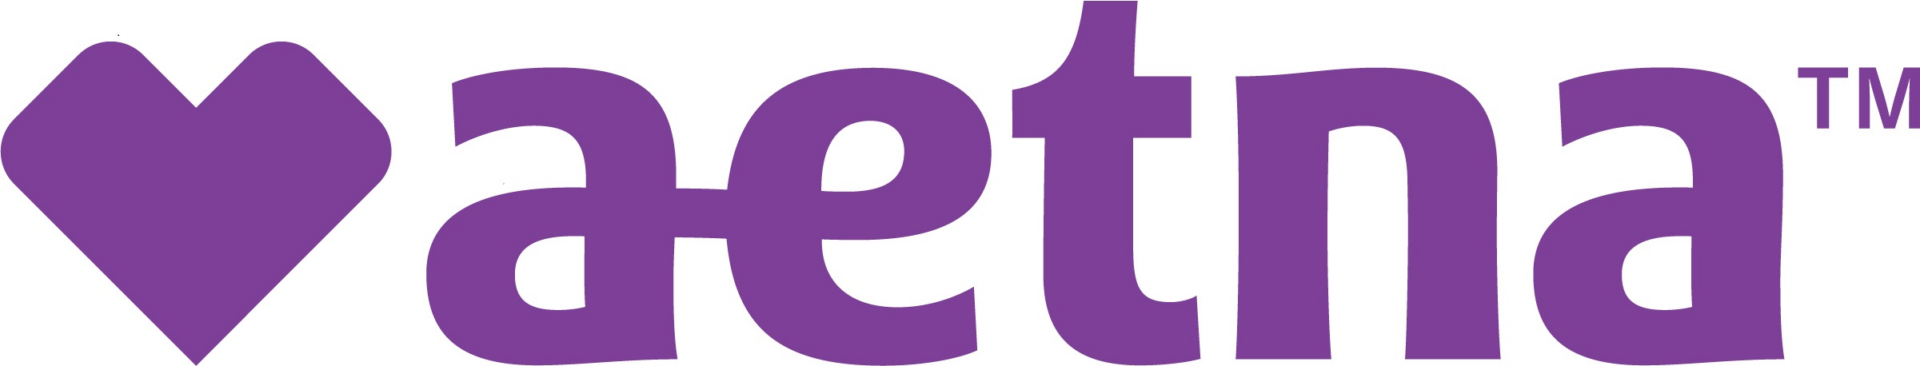 https://militarymojo.org/wp-content/uploads/2020/08/aetna-new.png